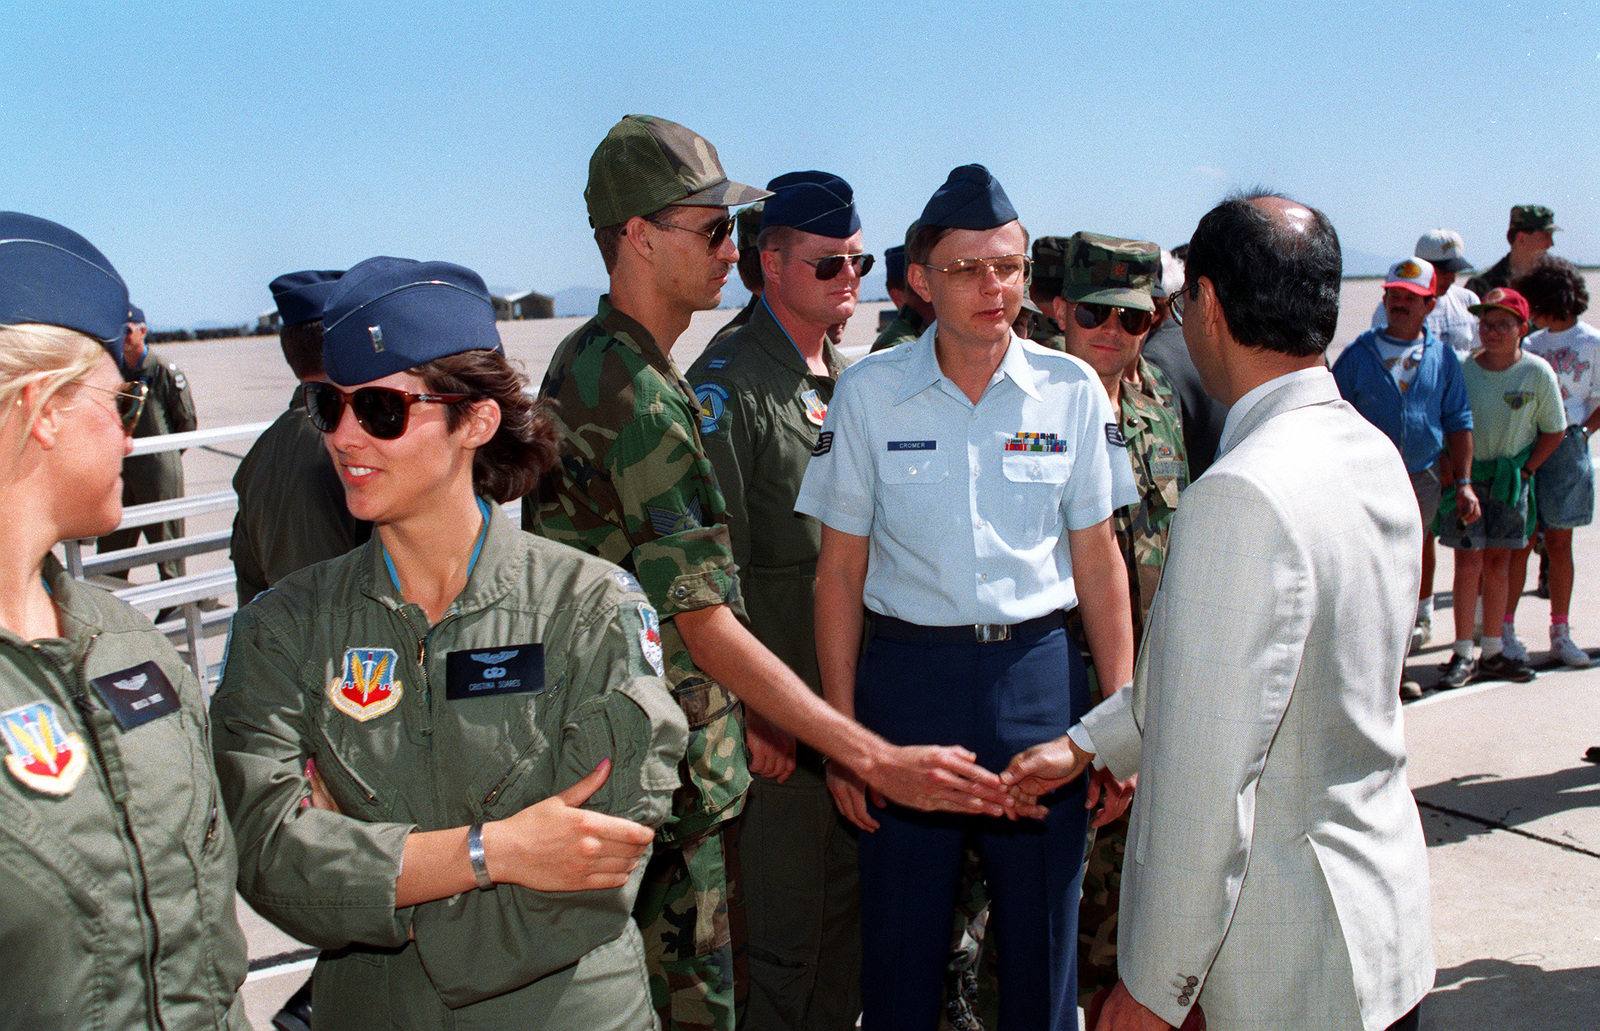 Sheikh Saud Nasir Al Sabah, third from right, Kuwait's ambassador to the U.S., shakes the hand of an airman as he makes his way through a crowd of well-wishers. Al Sabah has come to Davis-Monthan to thank the base's personnel for their role in Operation Desert Shield and Operation Desert Storm, which liberated Kuwait from its Iraqi invaders